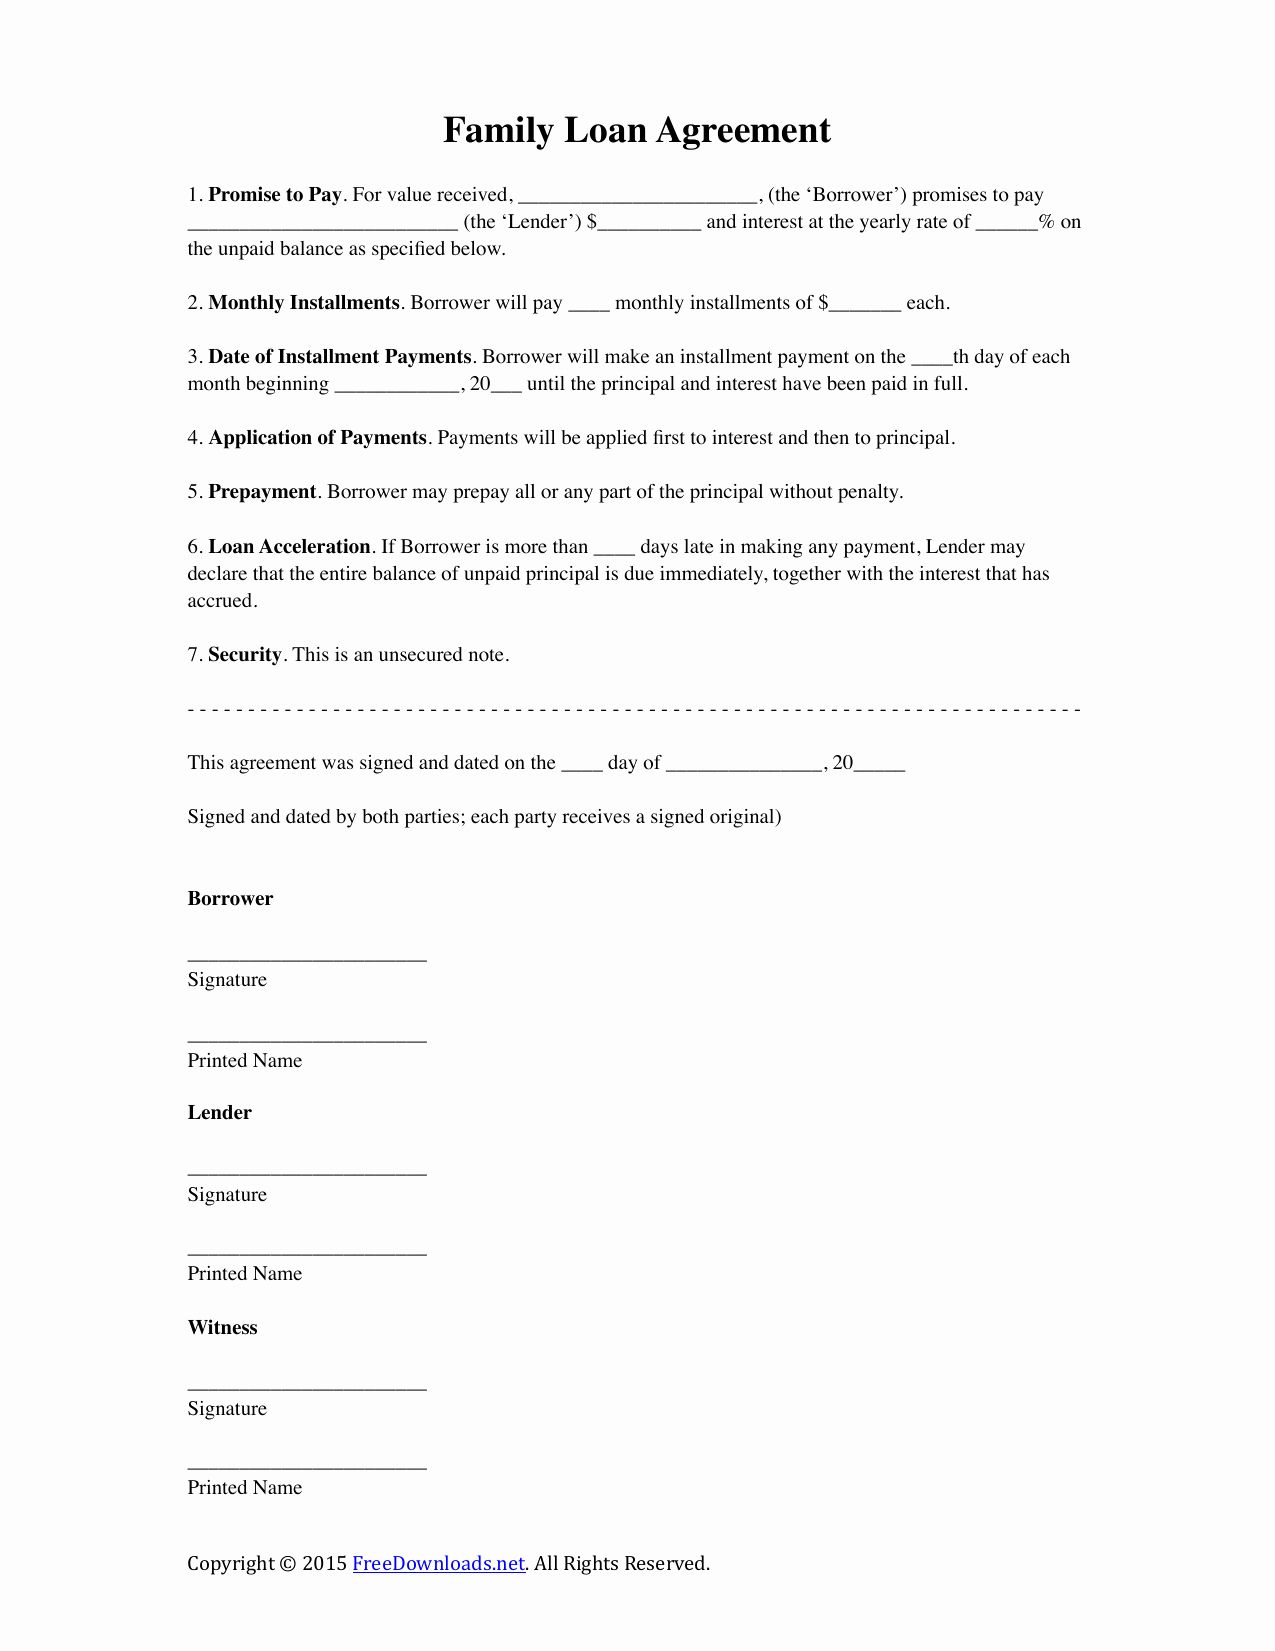 Free Personal Loan Contract Template Lovely Download Family Loan Agreement Template Pdf Rtf In 2020 Contract Template Notes Template Loan